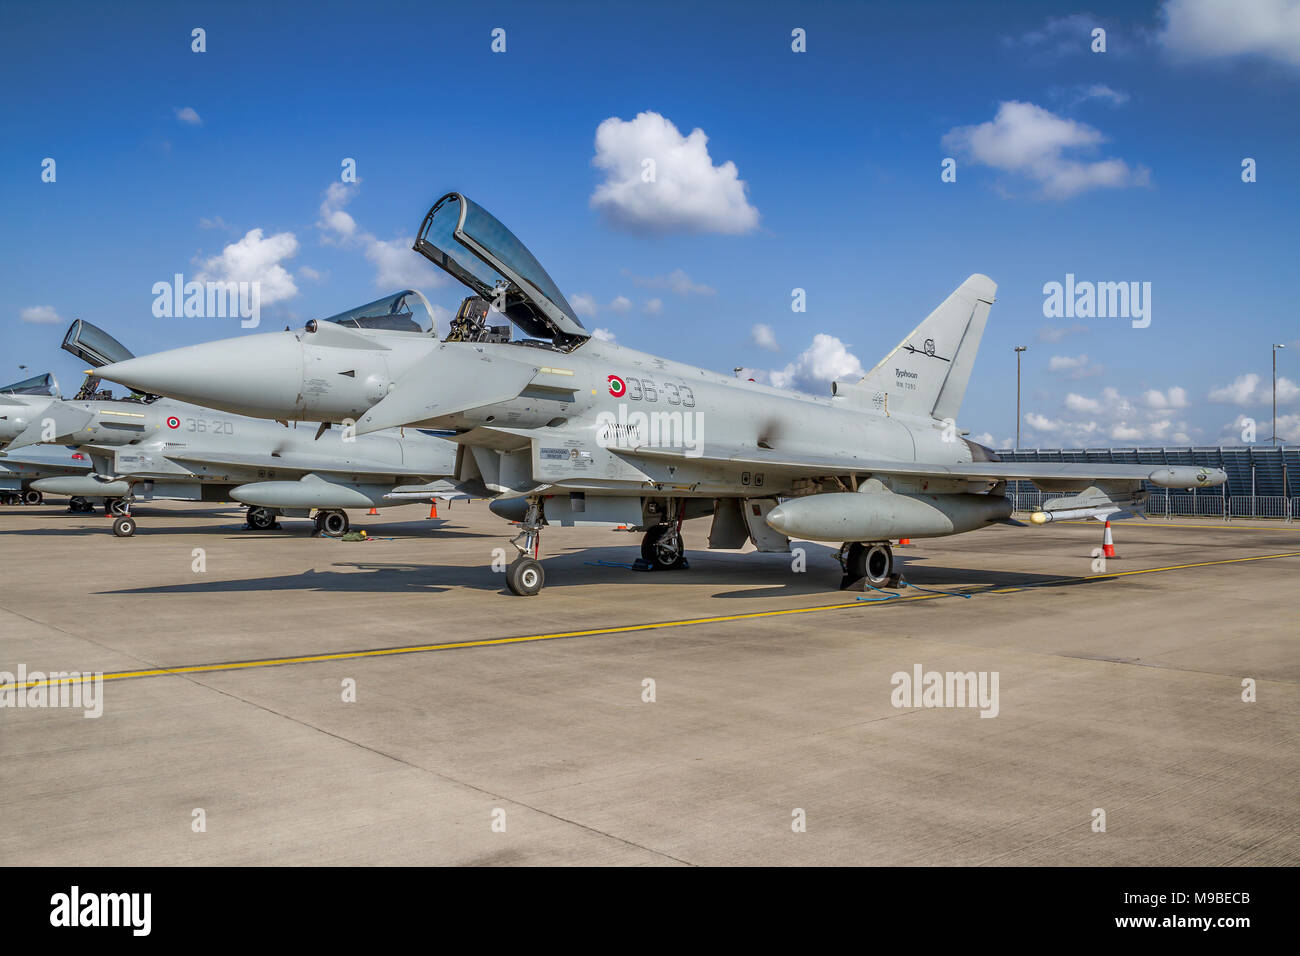 Eurofighter F-2000A Typhoon MM7293/36-33 of 36° Stormo Italian Air Force pictured on the flight line at RAF Waddington UK in 2011. Stock Photo